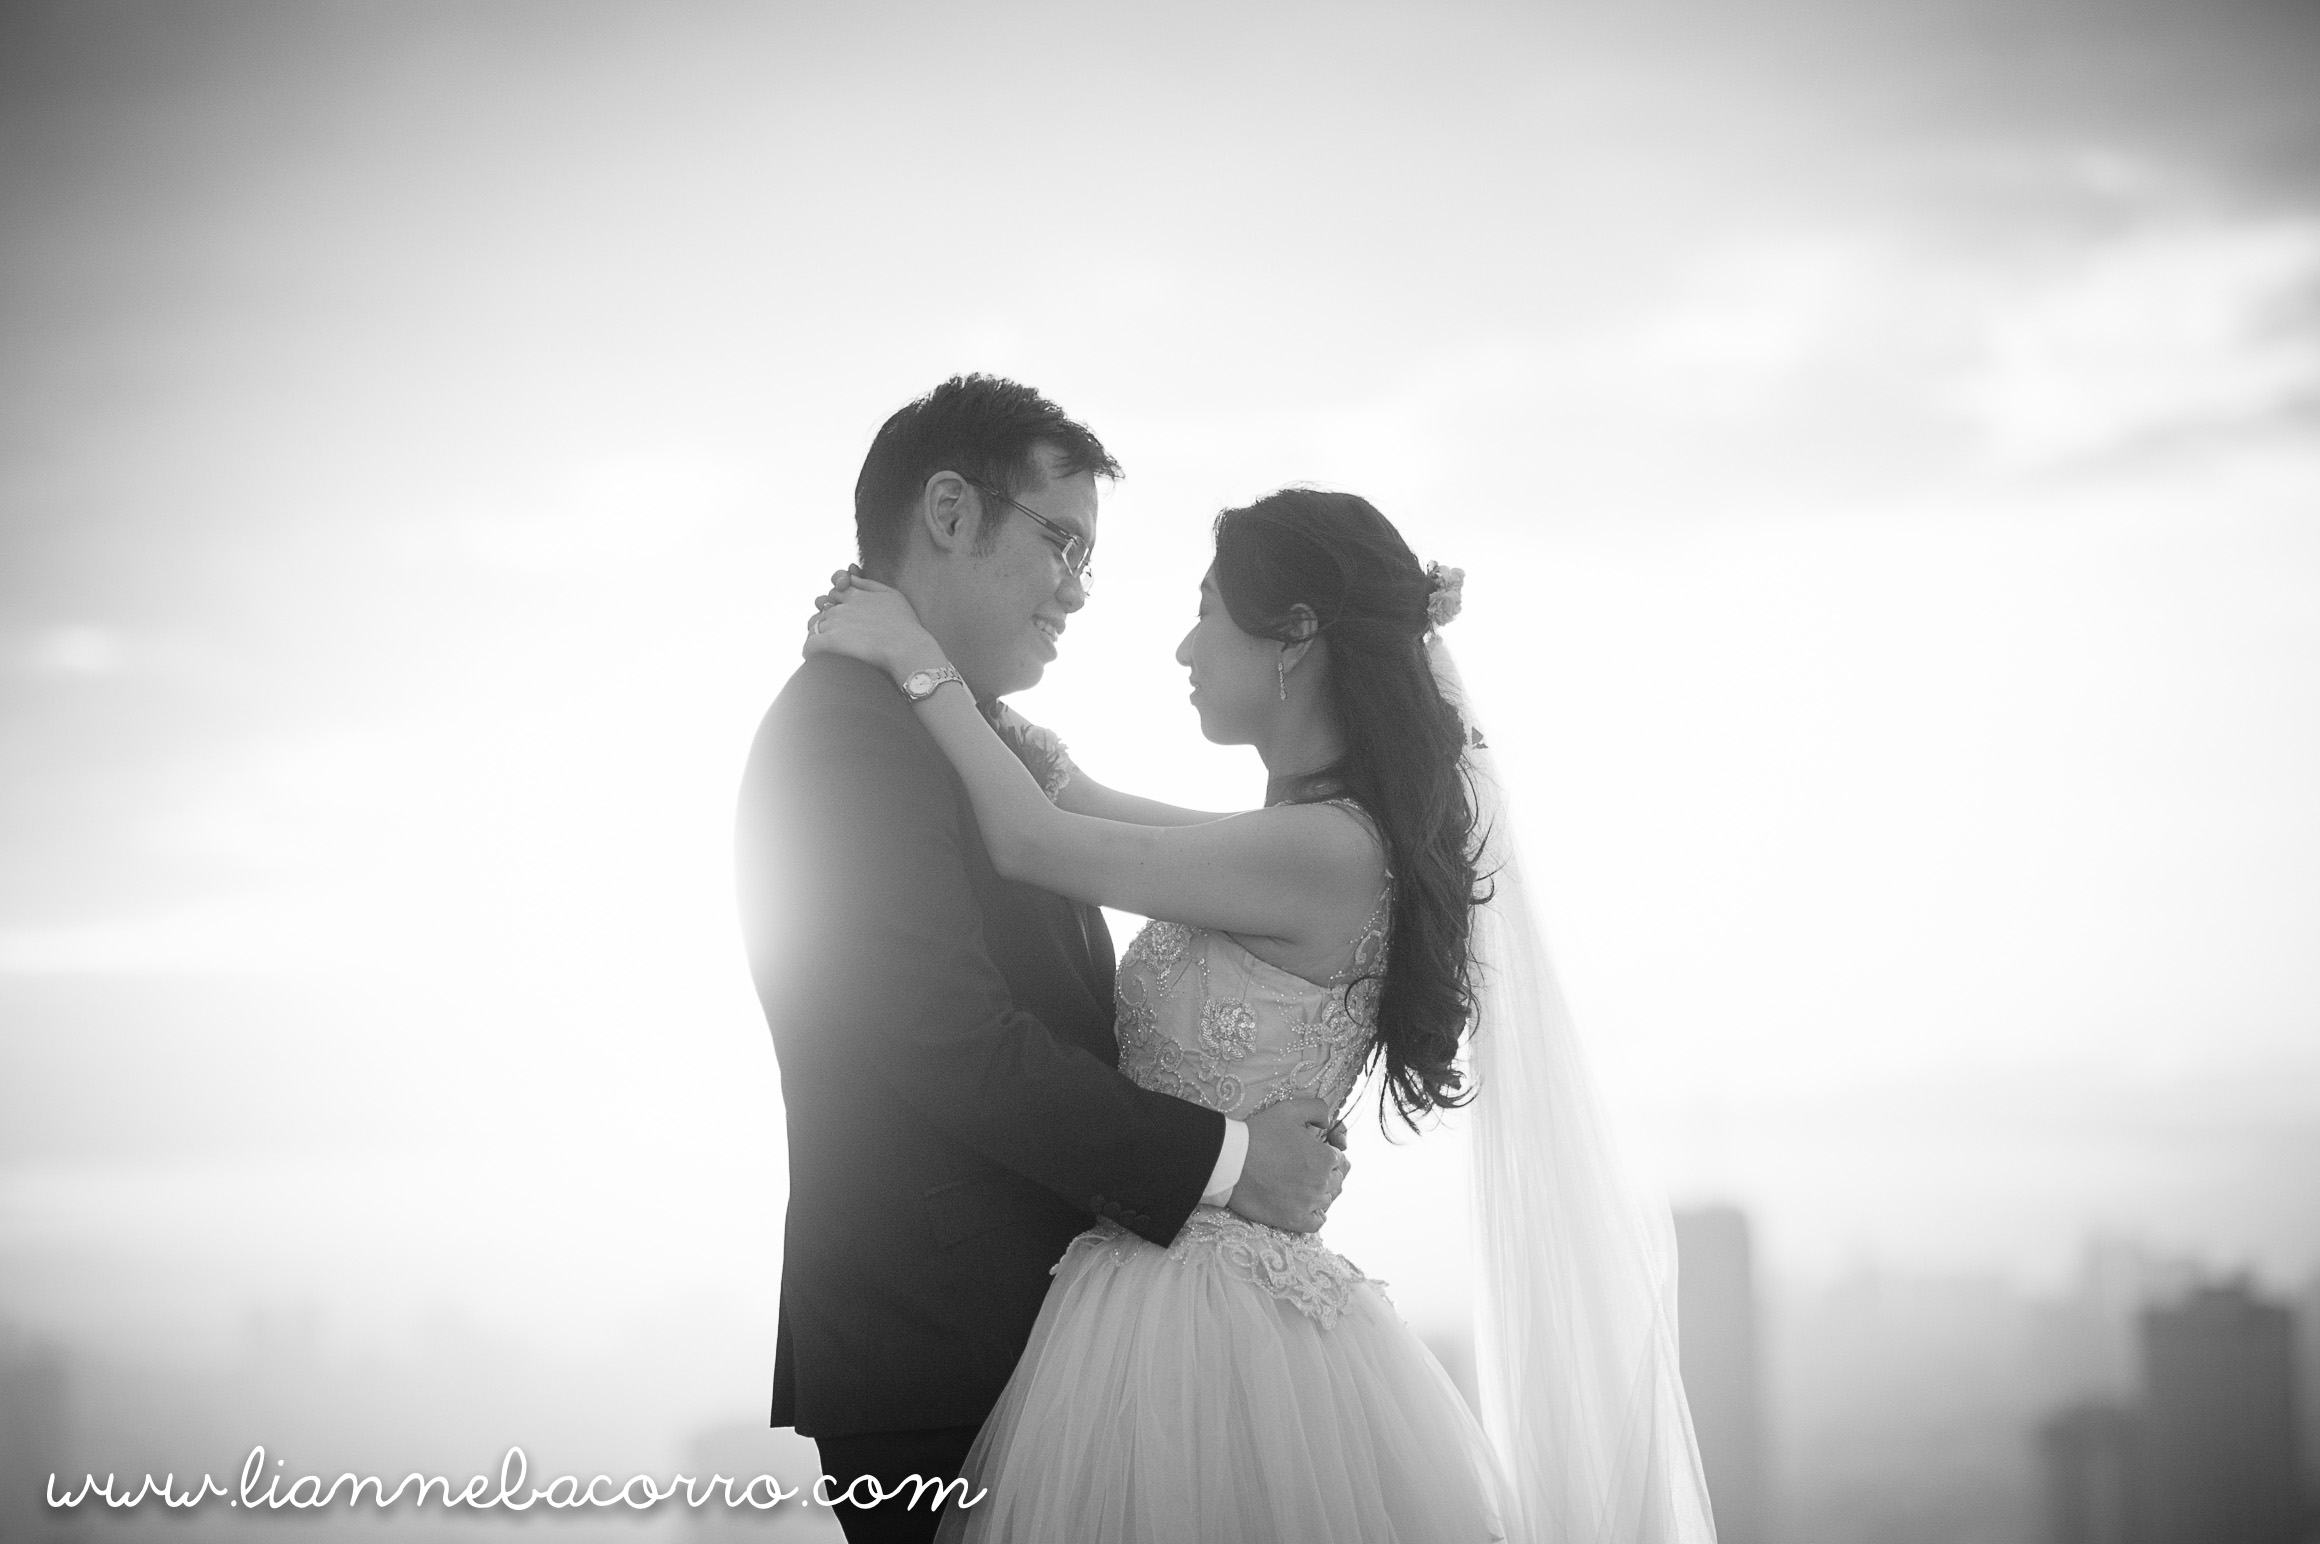 Dem and Kyra - Wedding Photography by Lianne Bacorro - Dan Rivera Photography-52